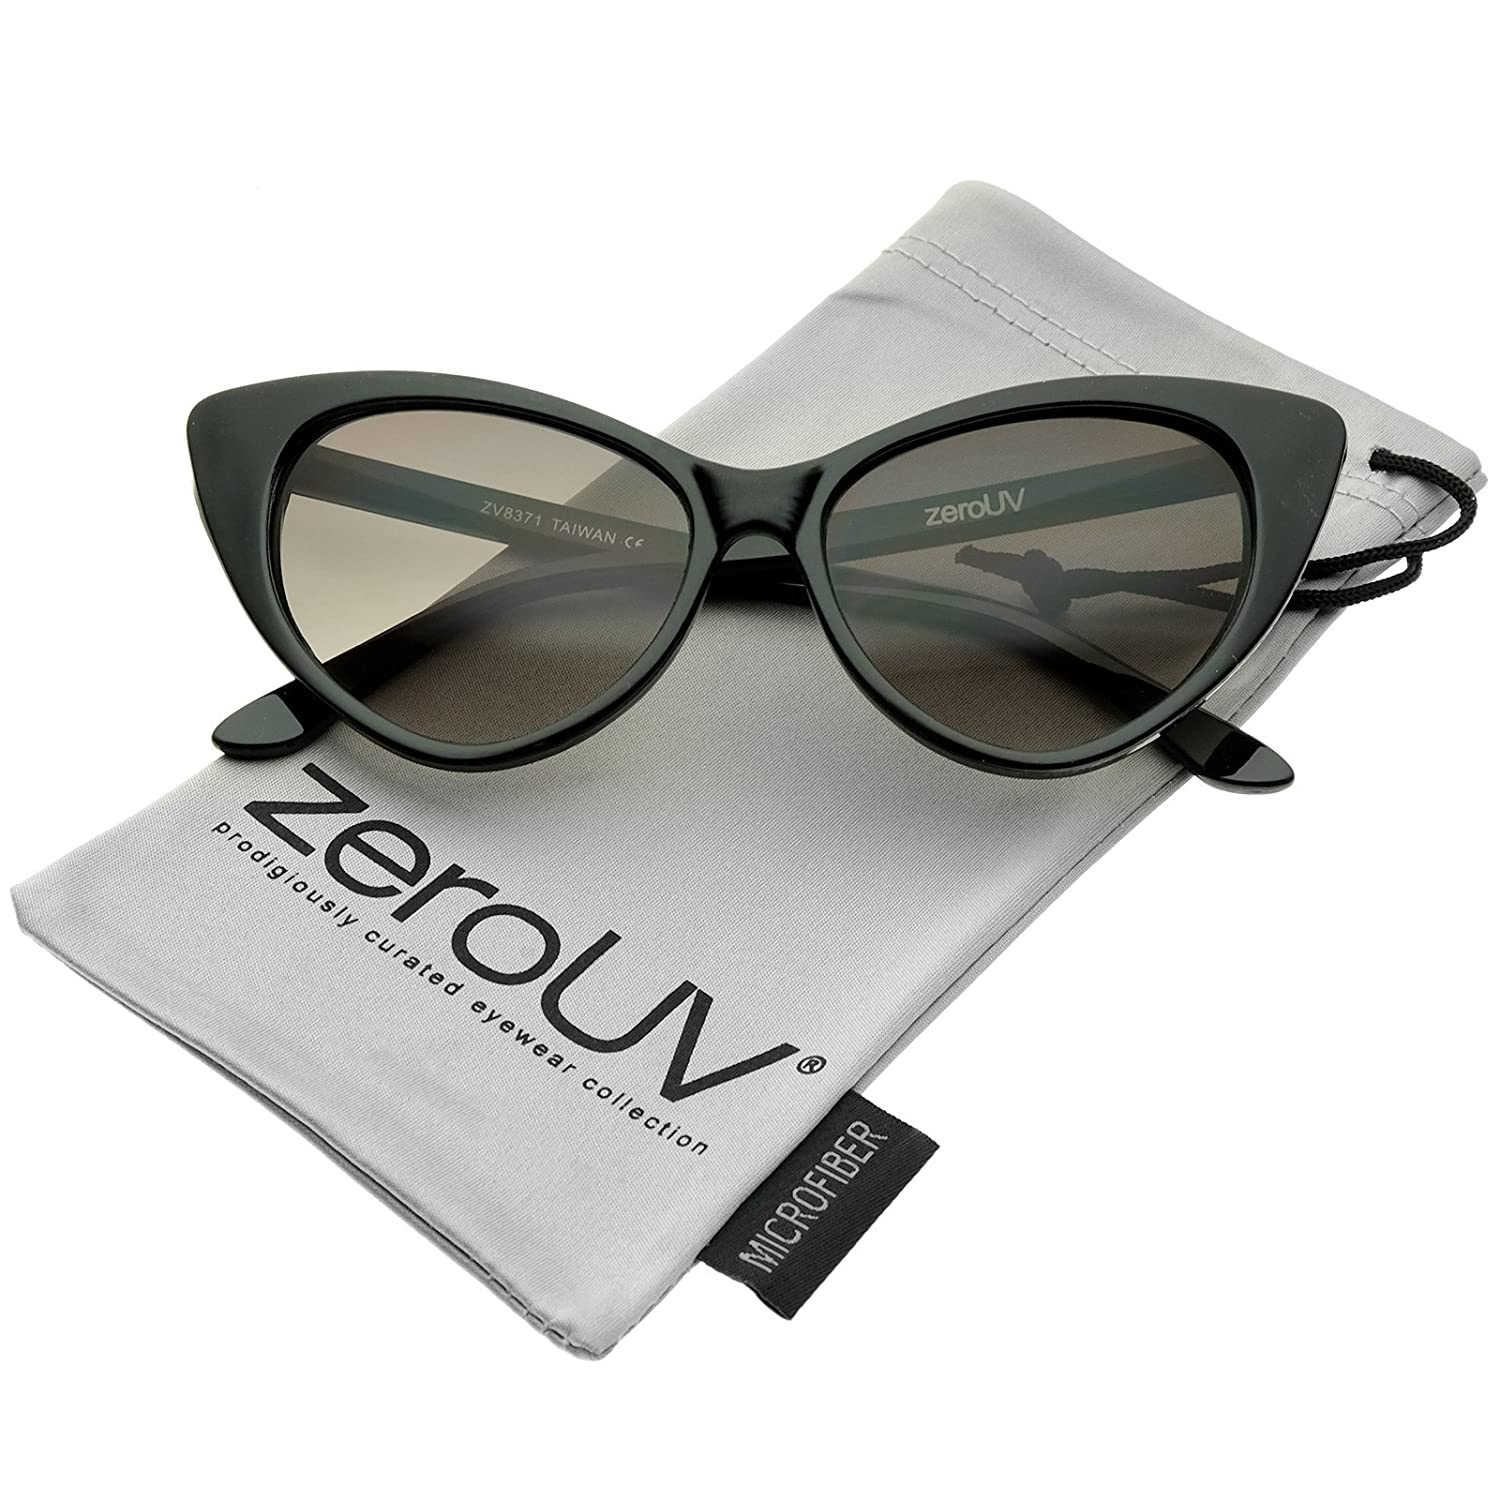 e7aeb2de877 Retro Inspired Frame Bold High Point Cat Eye Silhouette Stylish High  Sitting Temples Neutral-Colored Teardrop Lens